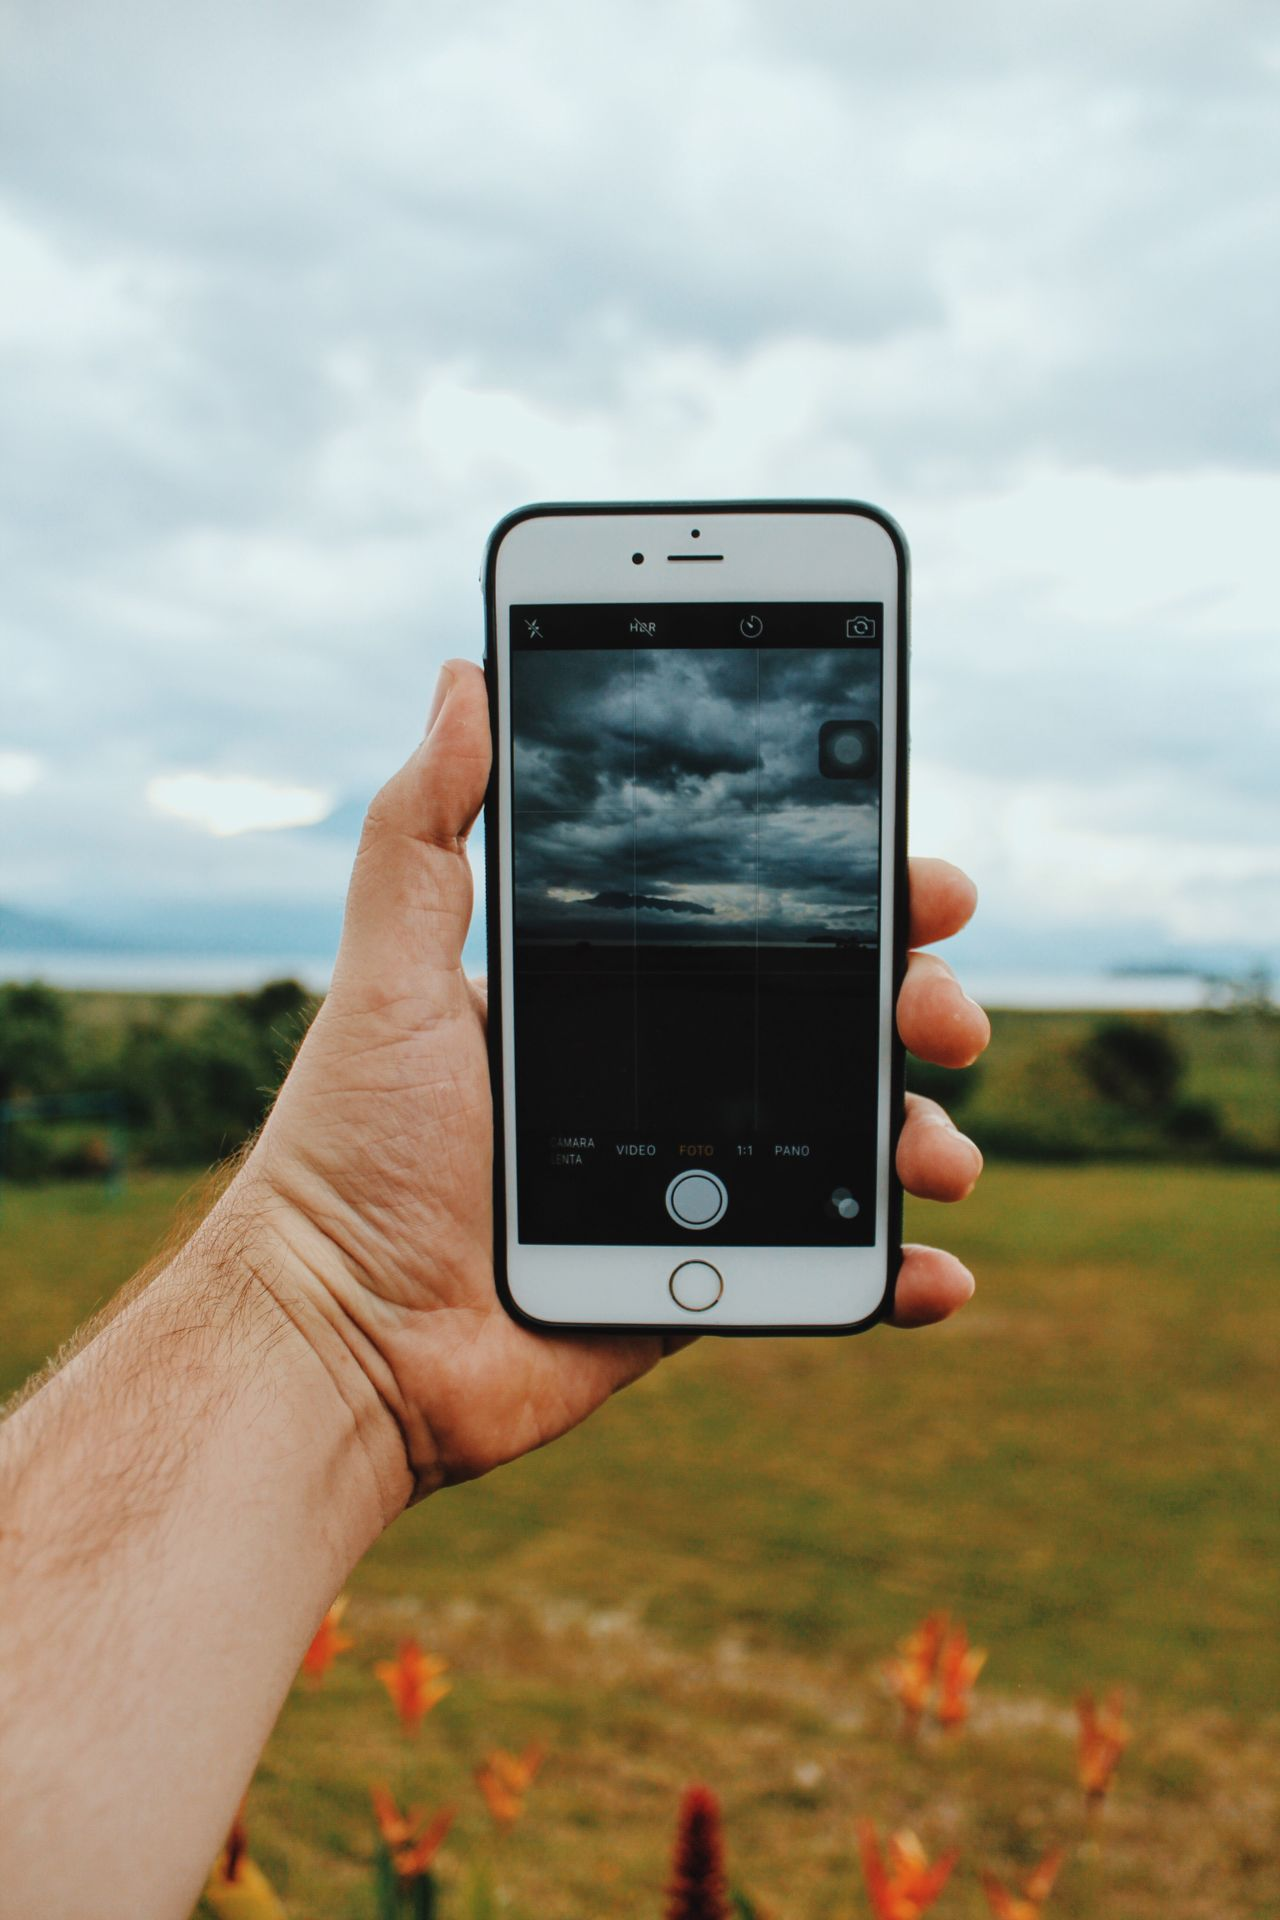 Home Human Hand Communication Holding Smart Phone Honduras EyeEm Best Shots Moodygrams Expofilm EyeEm Mood Portable Information Device Technology Human Body Part Cloud - Sky Real People One Person Leisure Activity Day Connection Close-up Landscape Grass Screen Sky